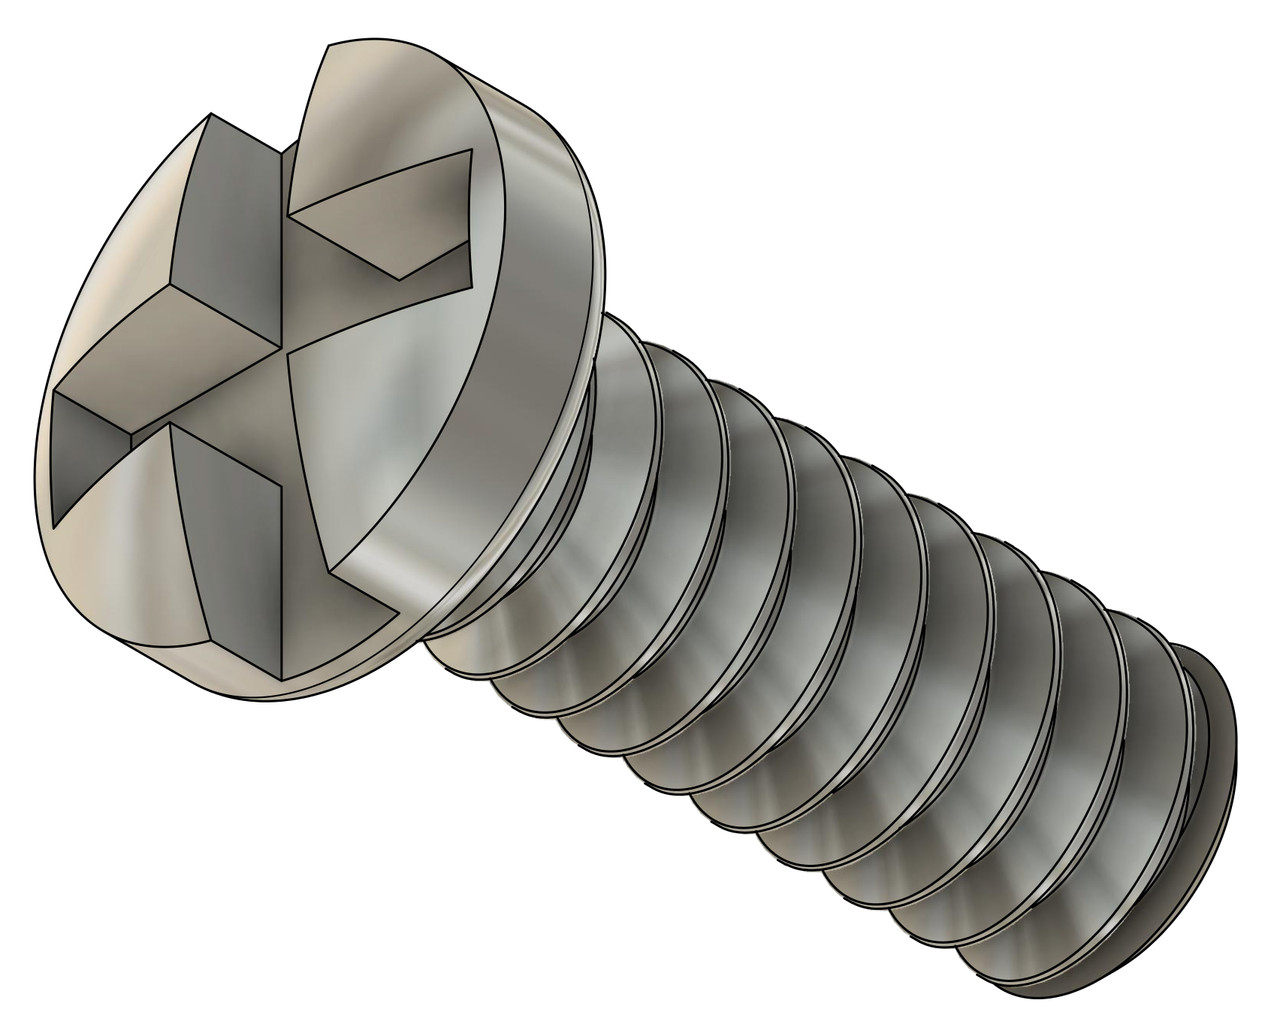 "Machine Screw Pan Head Slotted Phillips (Cross Recessed) Thread 00-90 2A Length Under Head 1/8"" (3.1mm) Overall Length 3.8mm Head Diameter Maximum 0.078"" (2.00mm) Stainless Steel Packaged in 100 Count Vials"